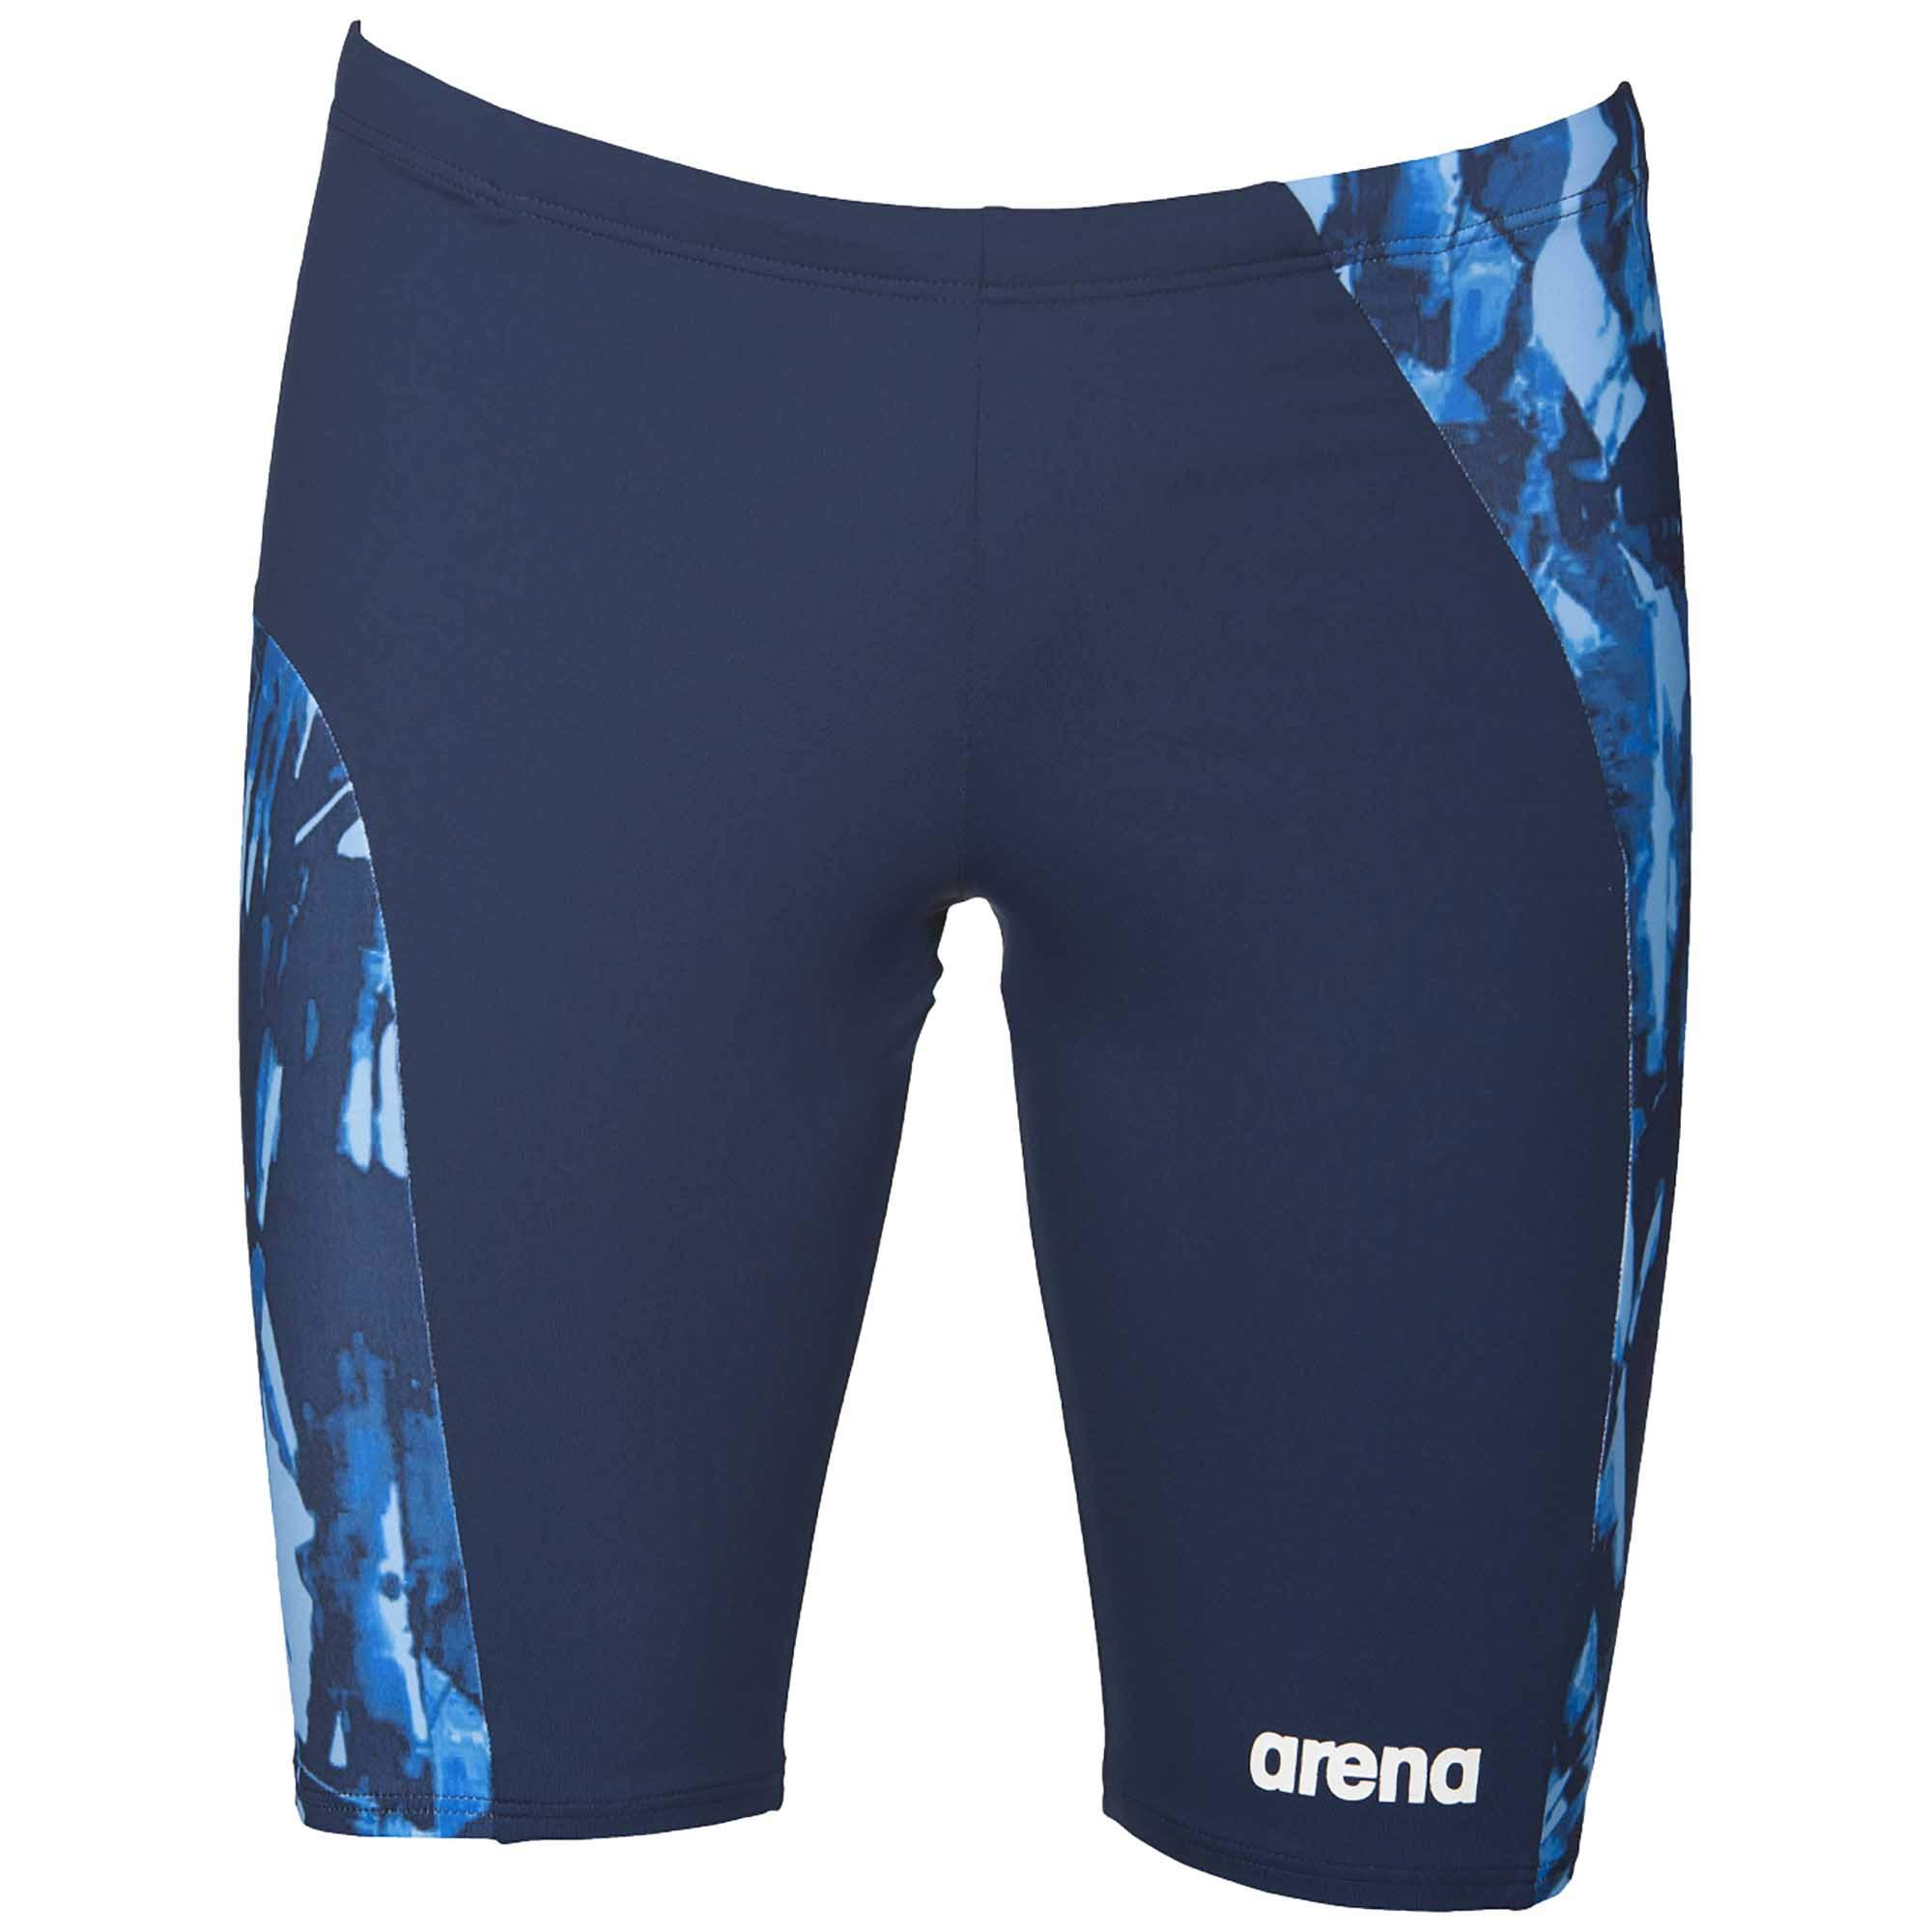 Arena Painted Jammer - MaxLife by Arena